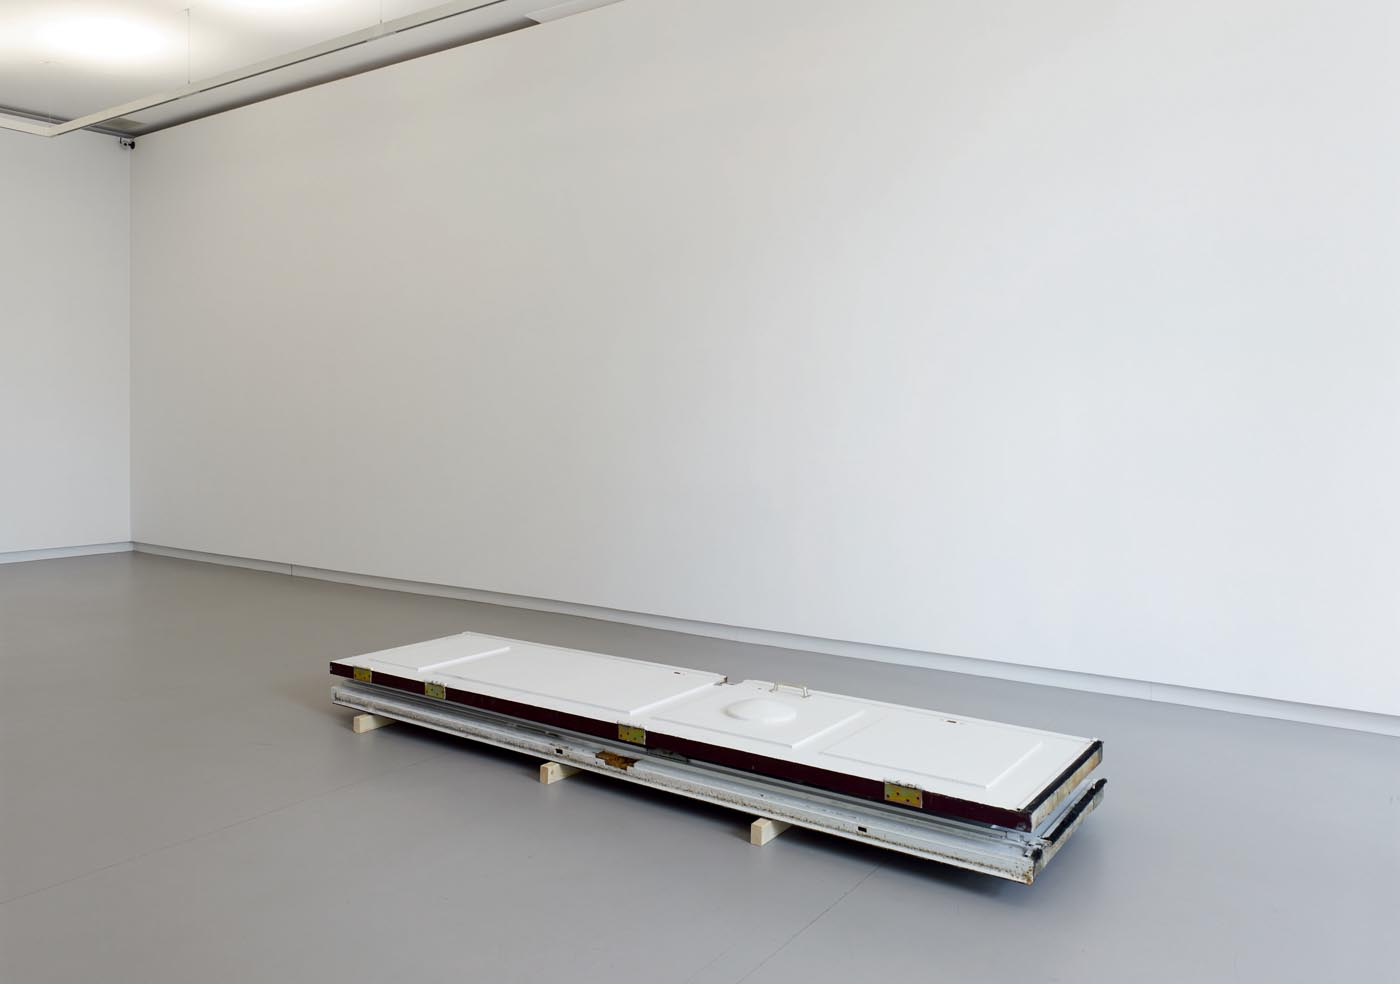 <p><em>Denial</em>, 2015, entrance doors, removed just before mounting the exhibition and replaced right after deinstalling</p>